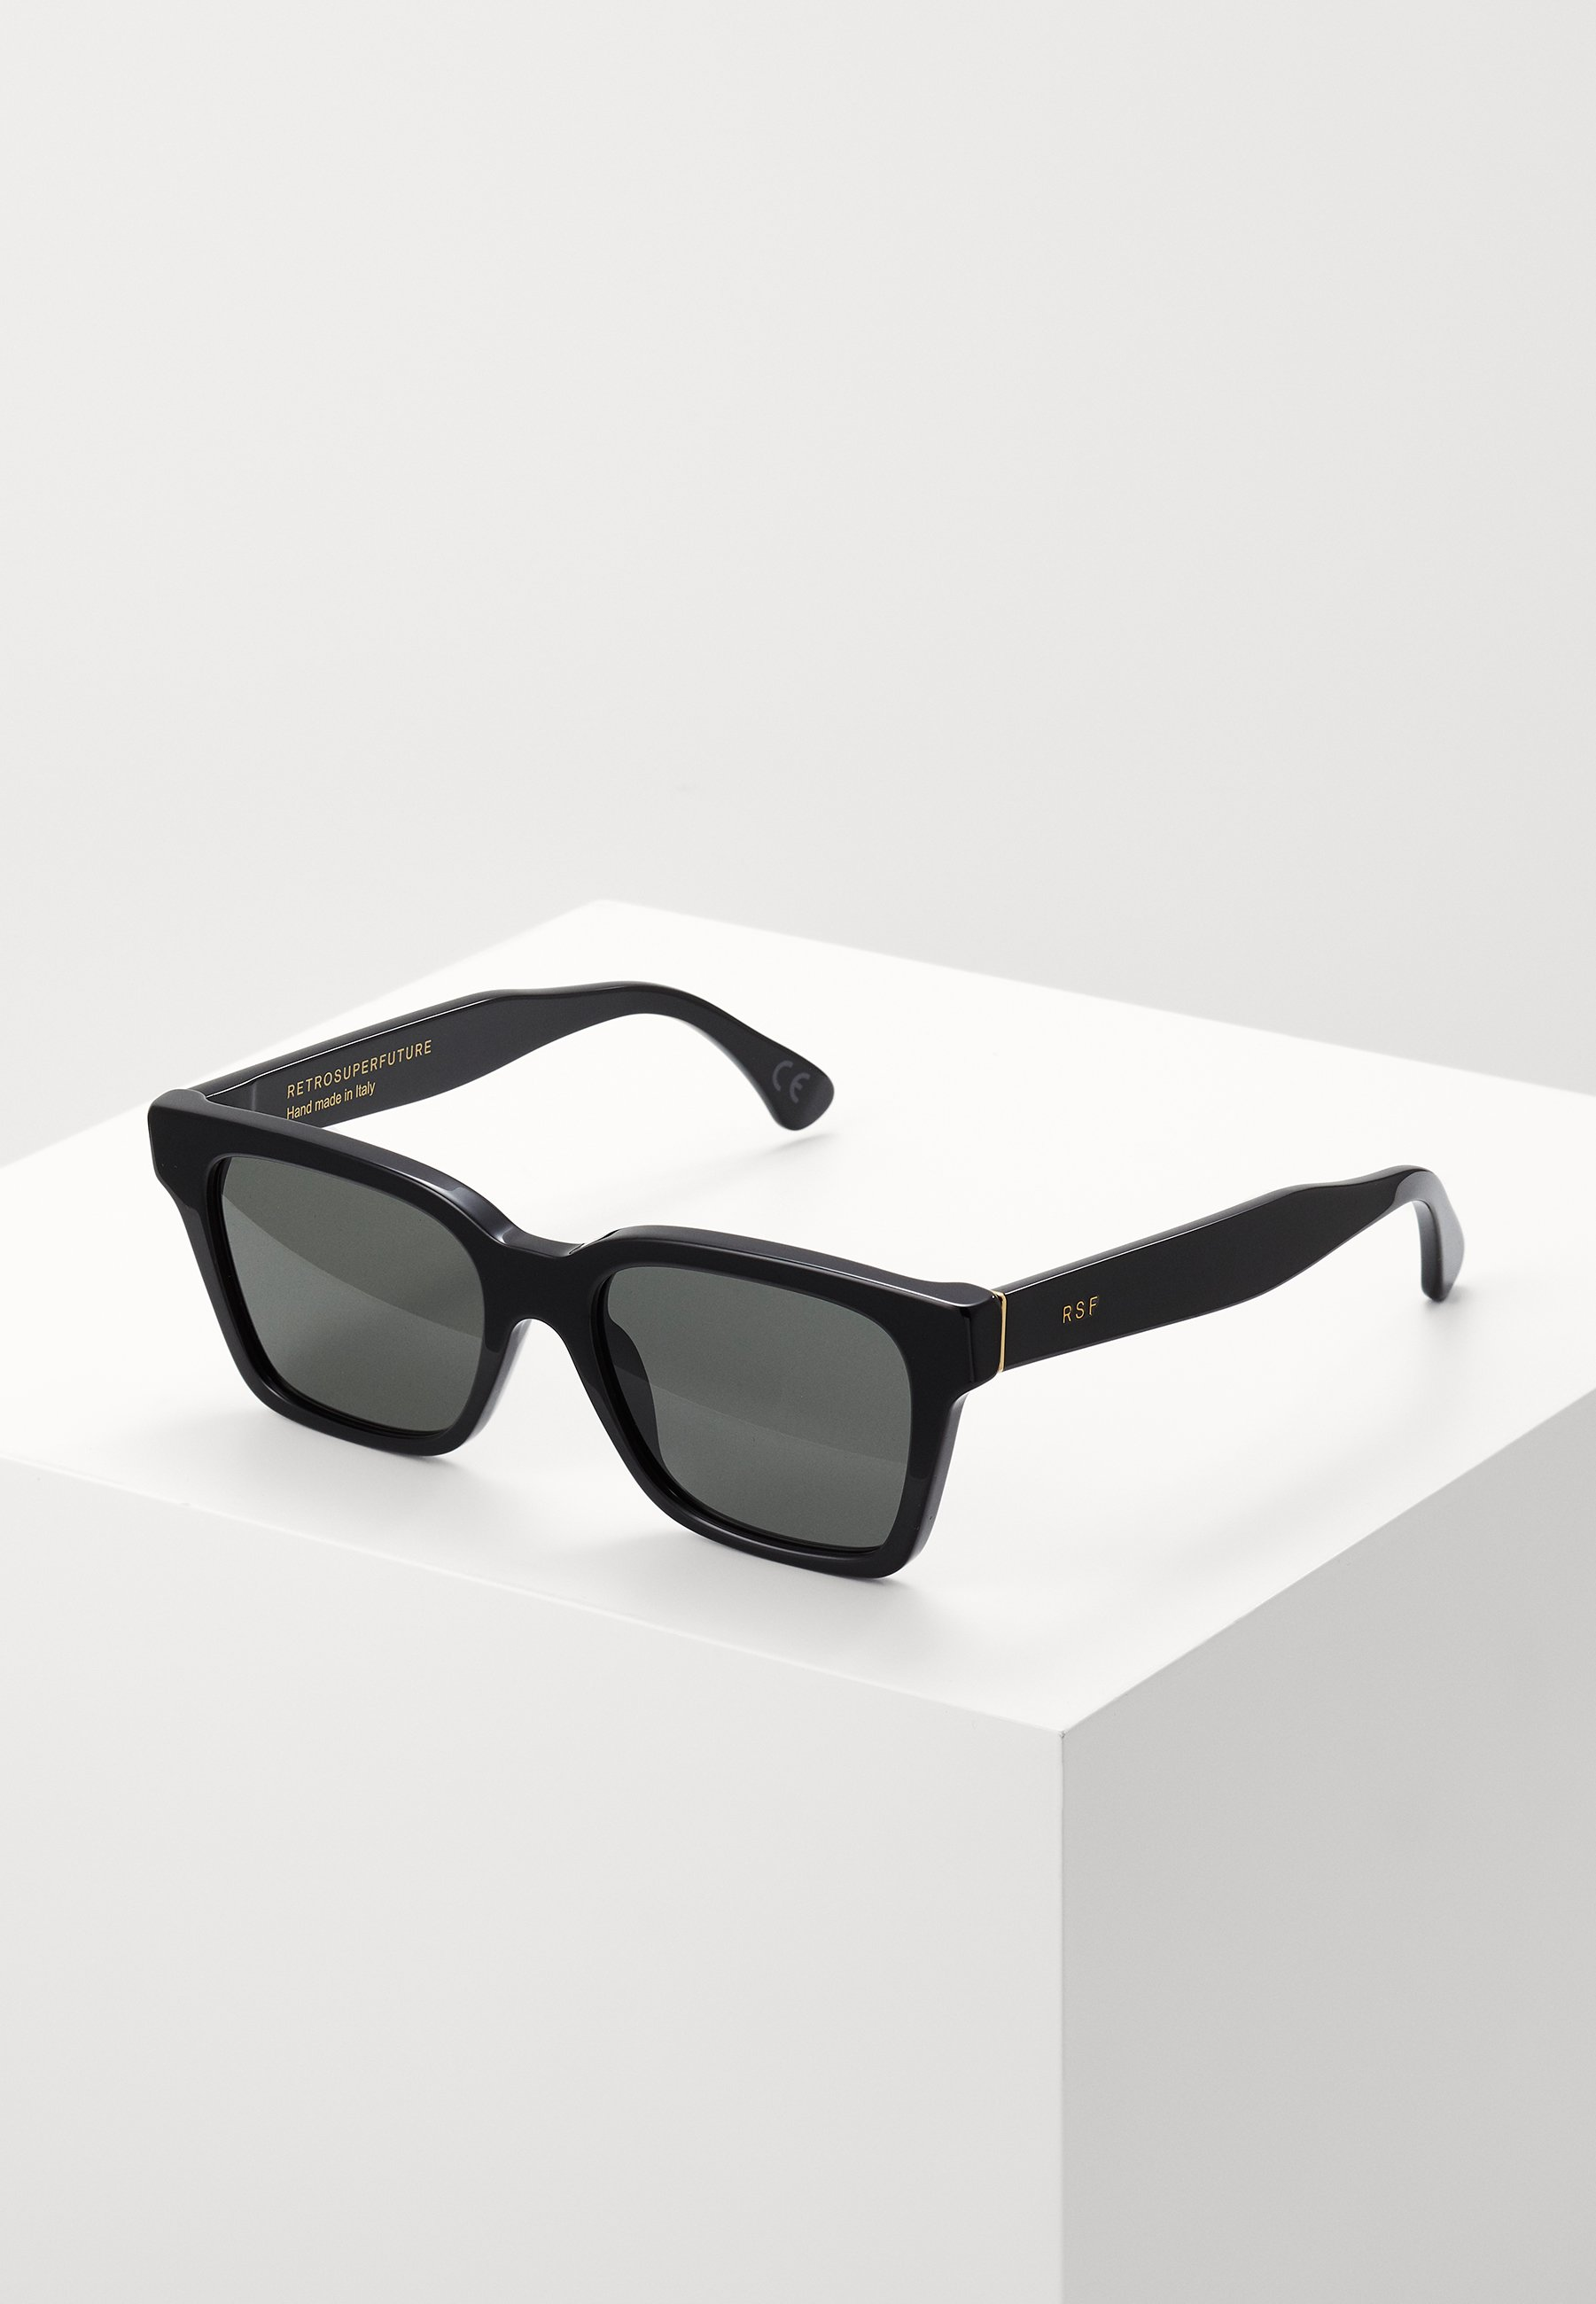 Limited New Outlet RETROSUPERFUTURE AMERICA - Sunglasses - black | men's accessories 2020 mZdSm